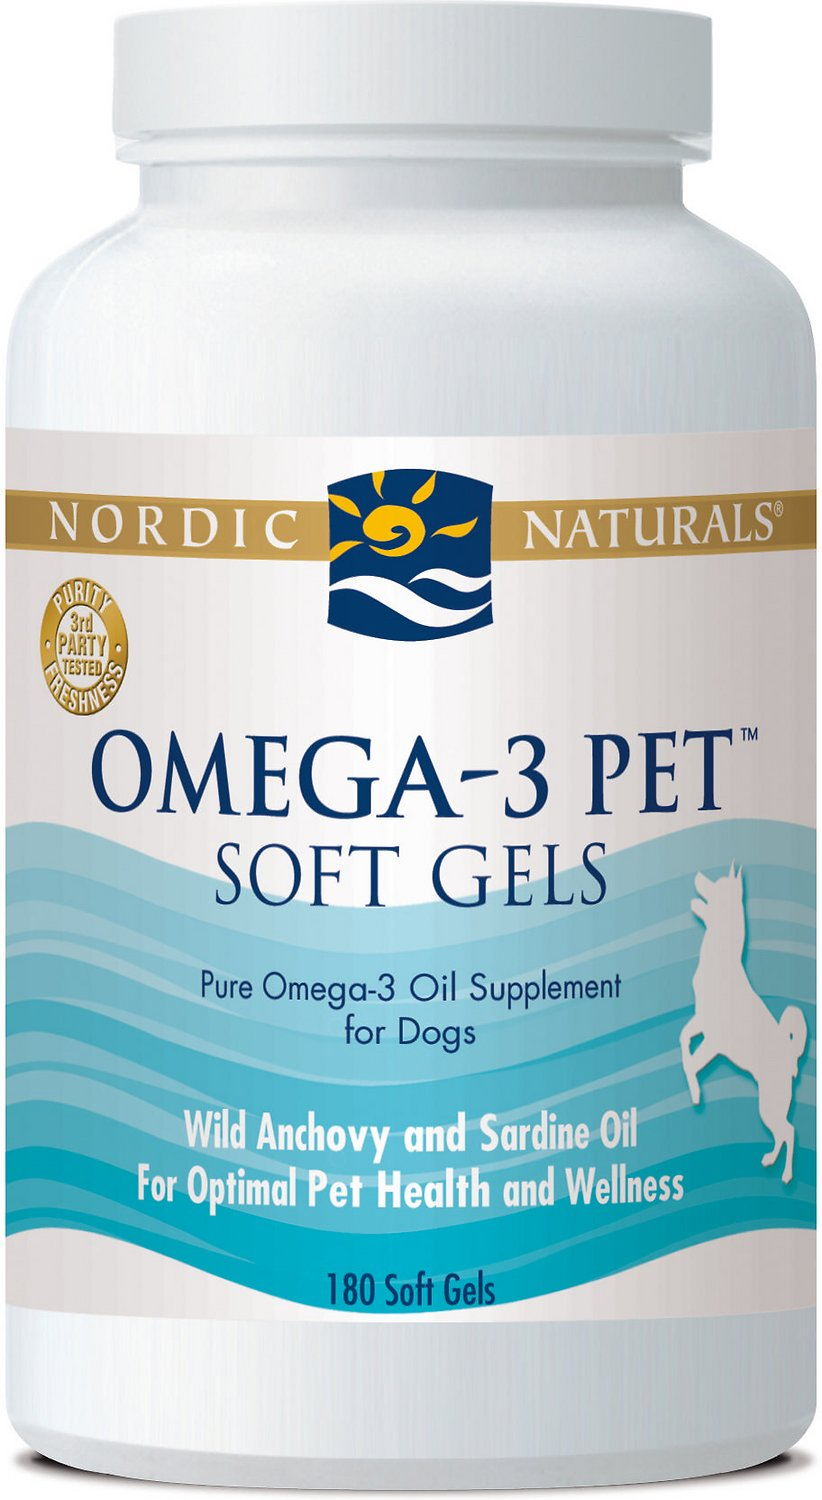 Nordic Naturals Omega-3 Pet Soft Gels Dog Supplement